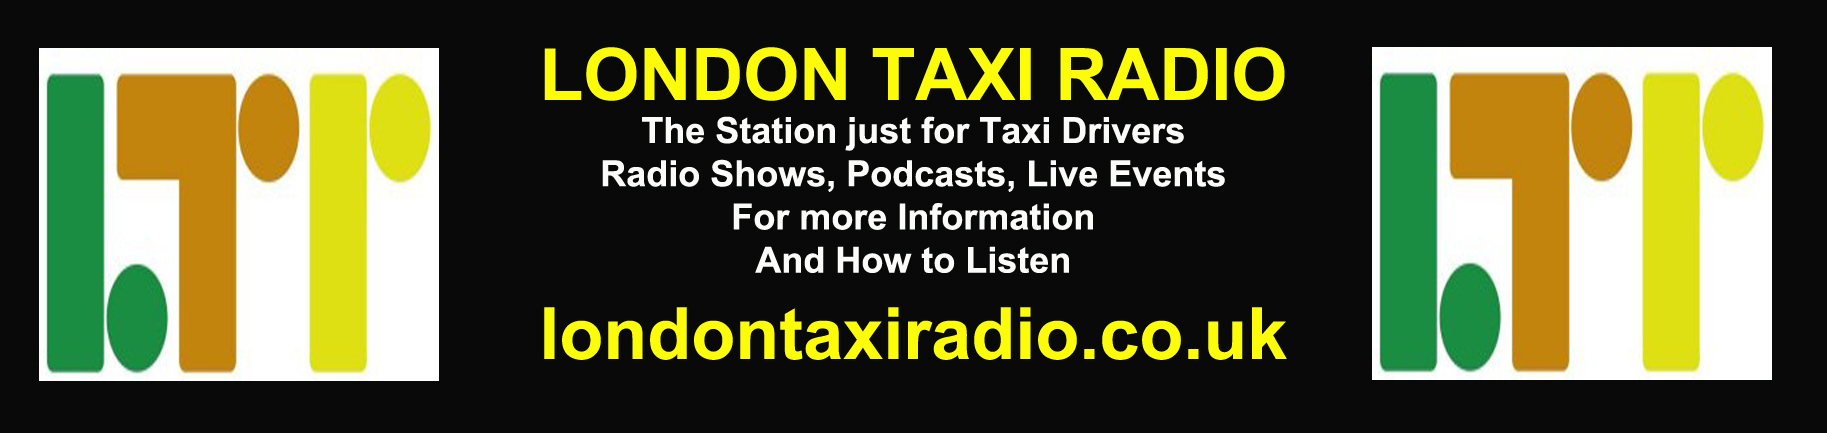 London Taxi Radio Banner